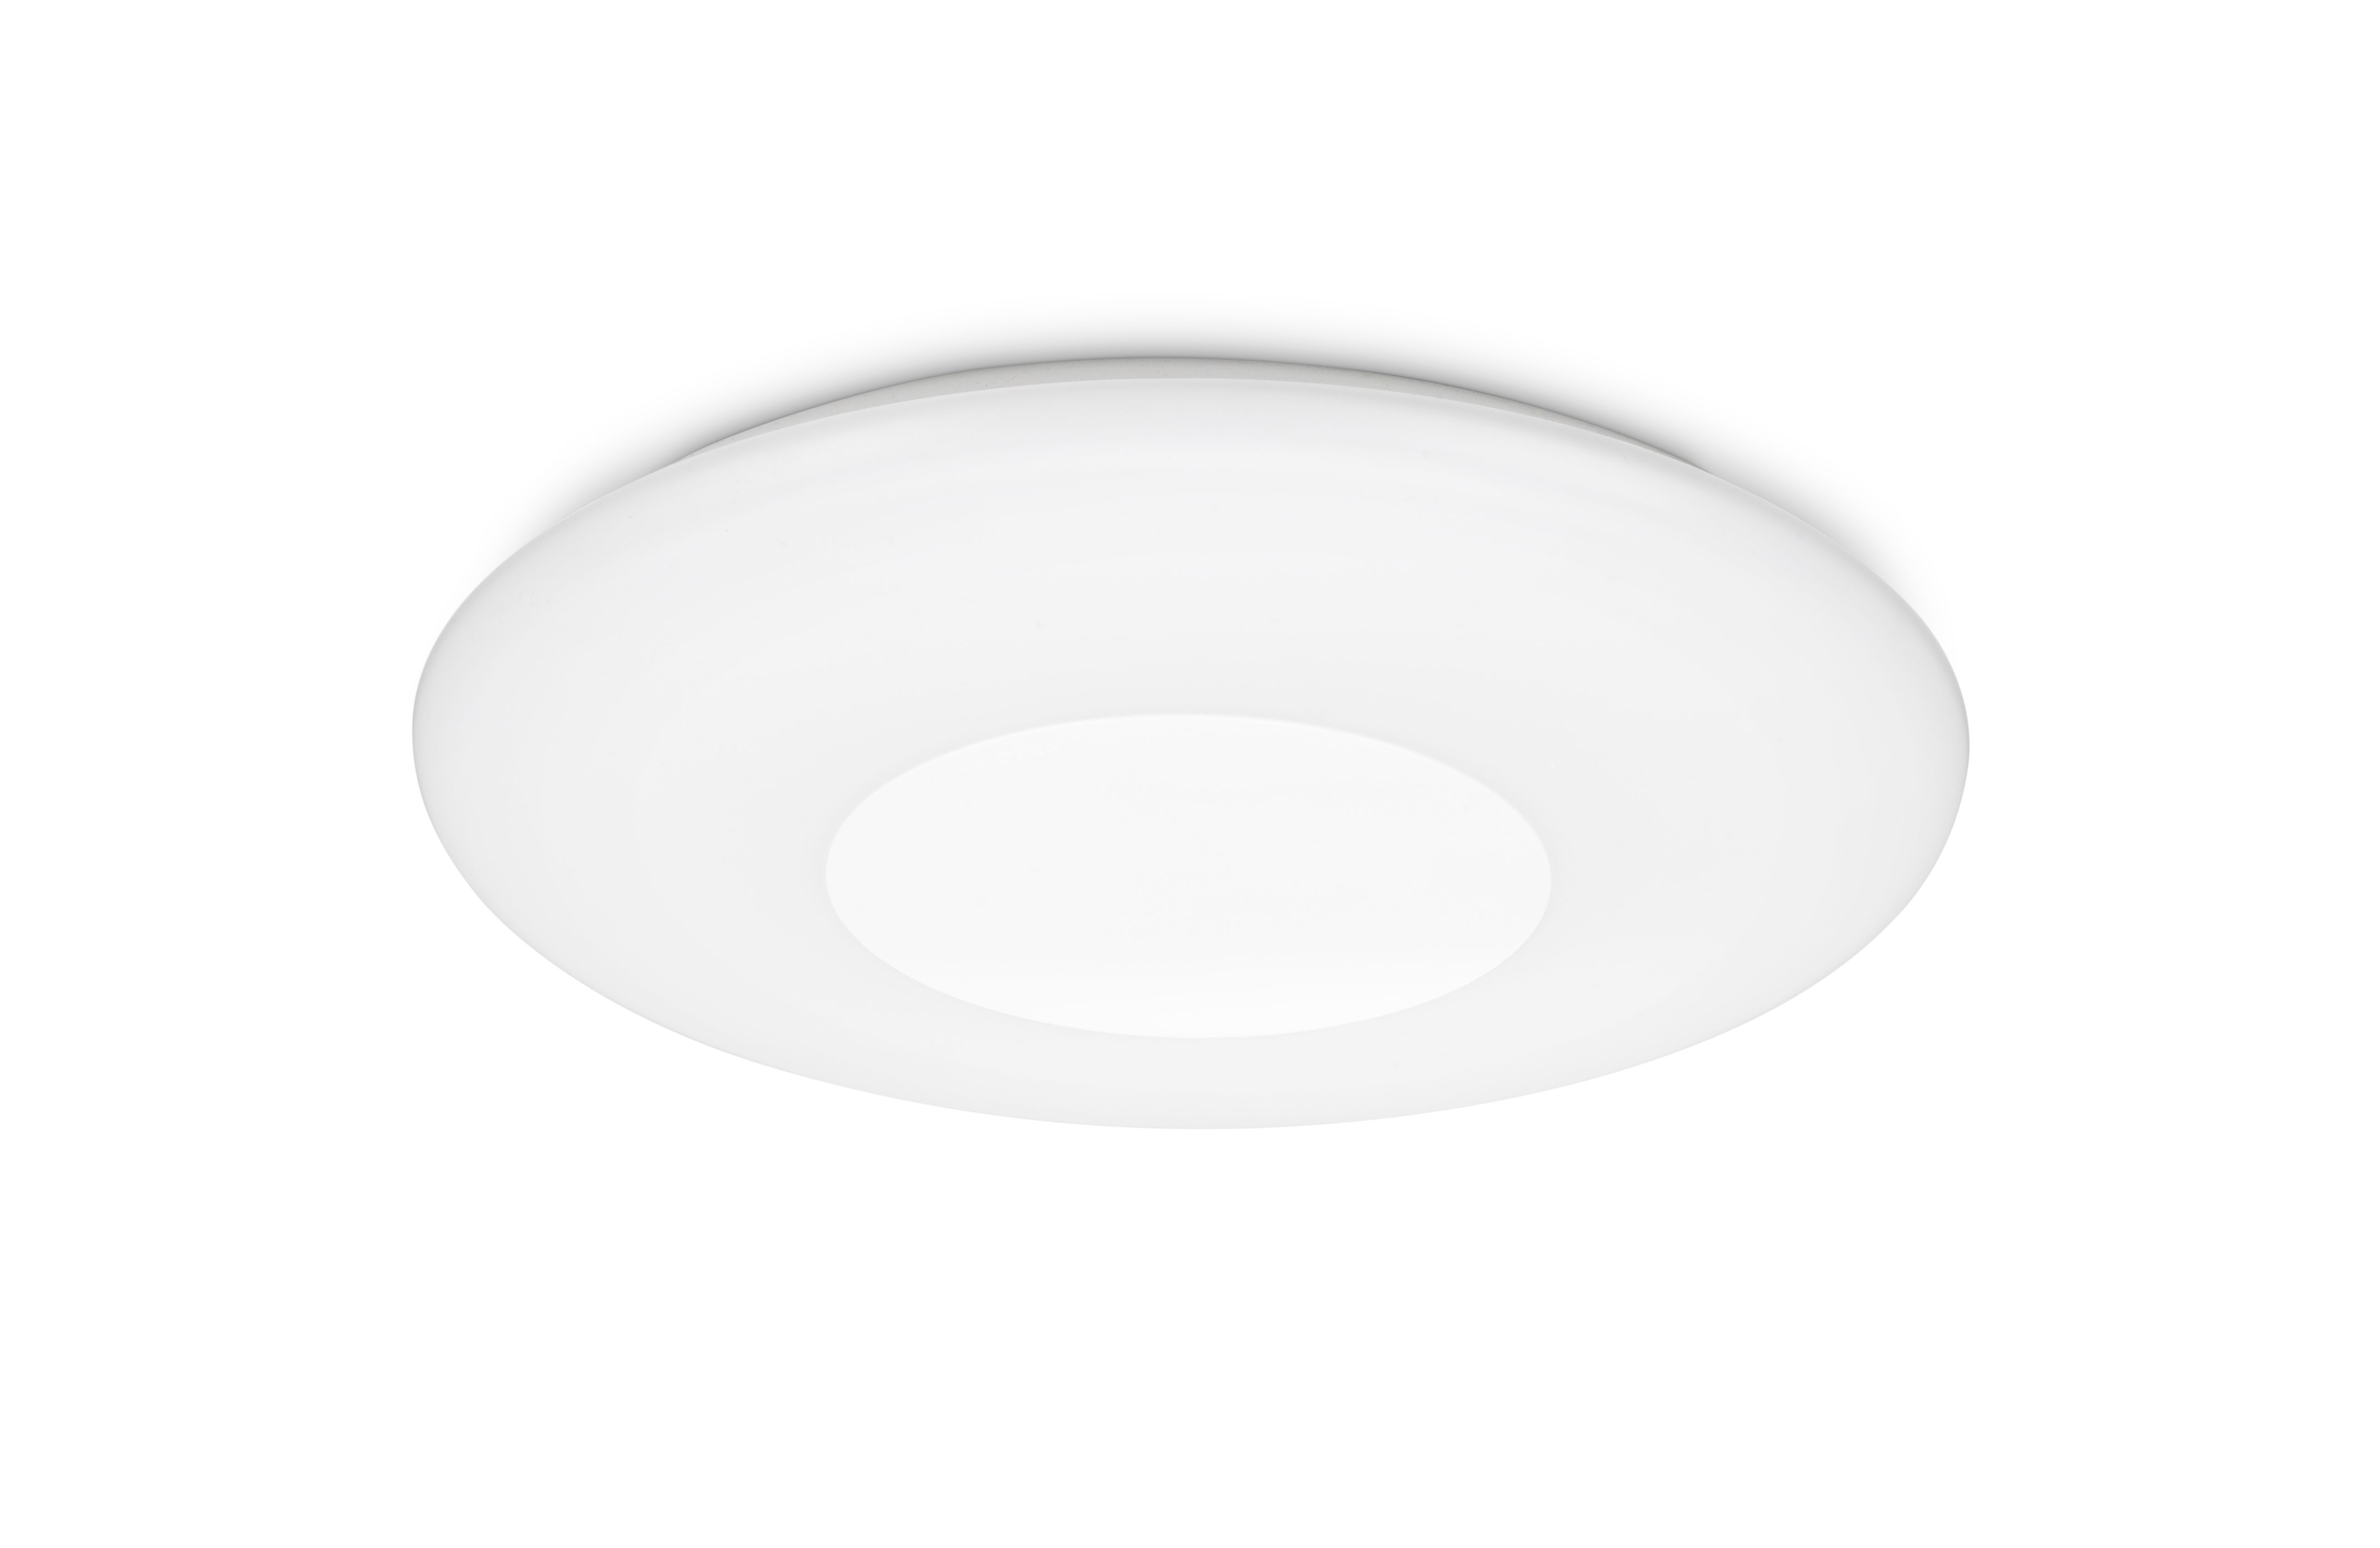 Plafondlamp LED 16W wit